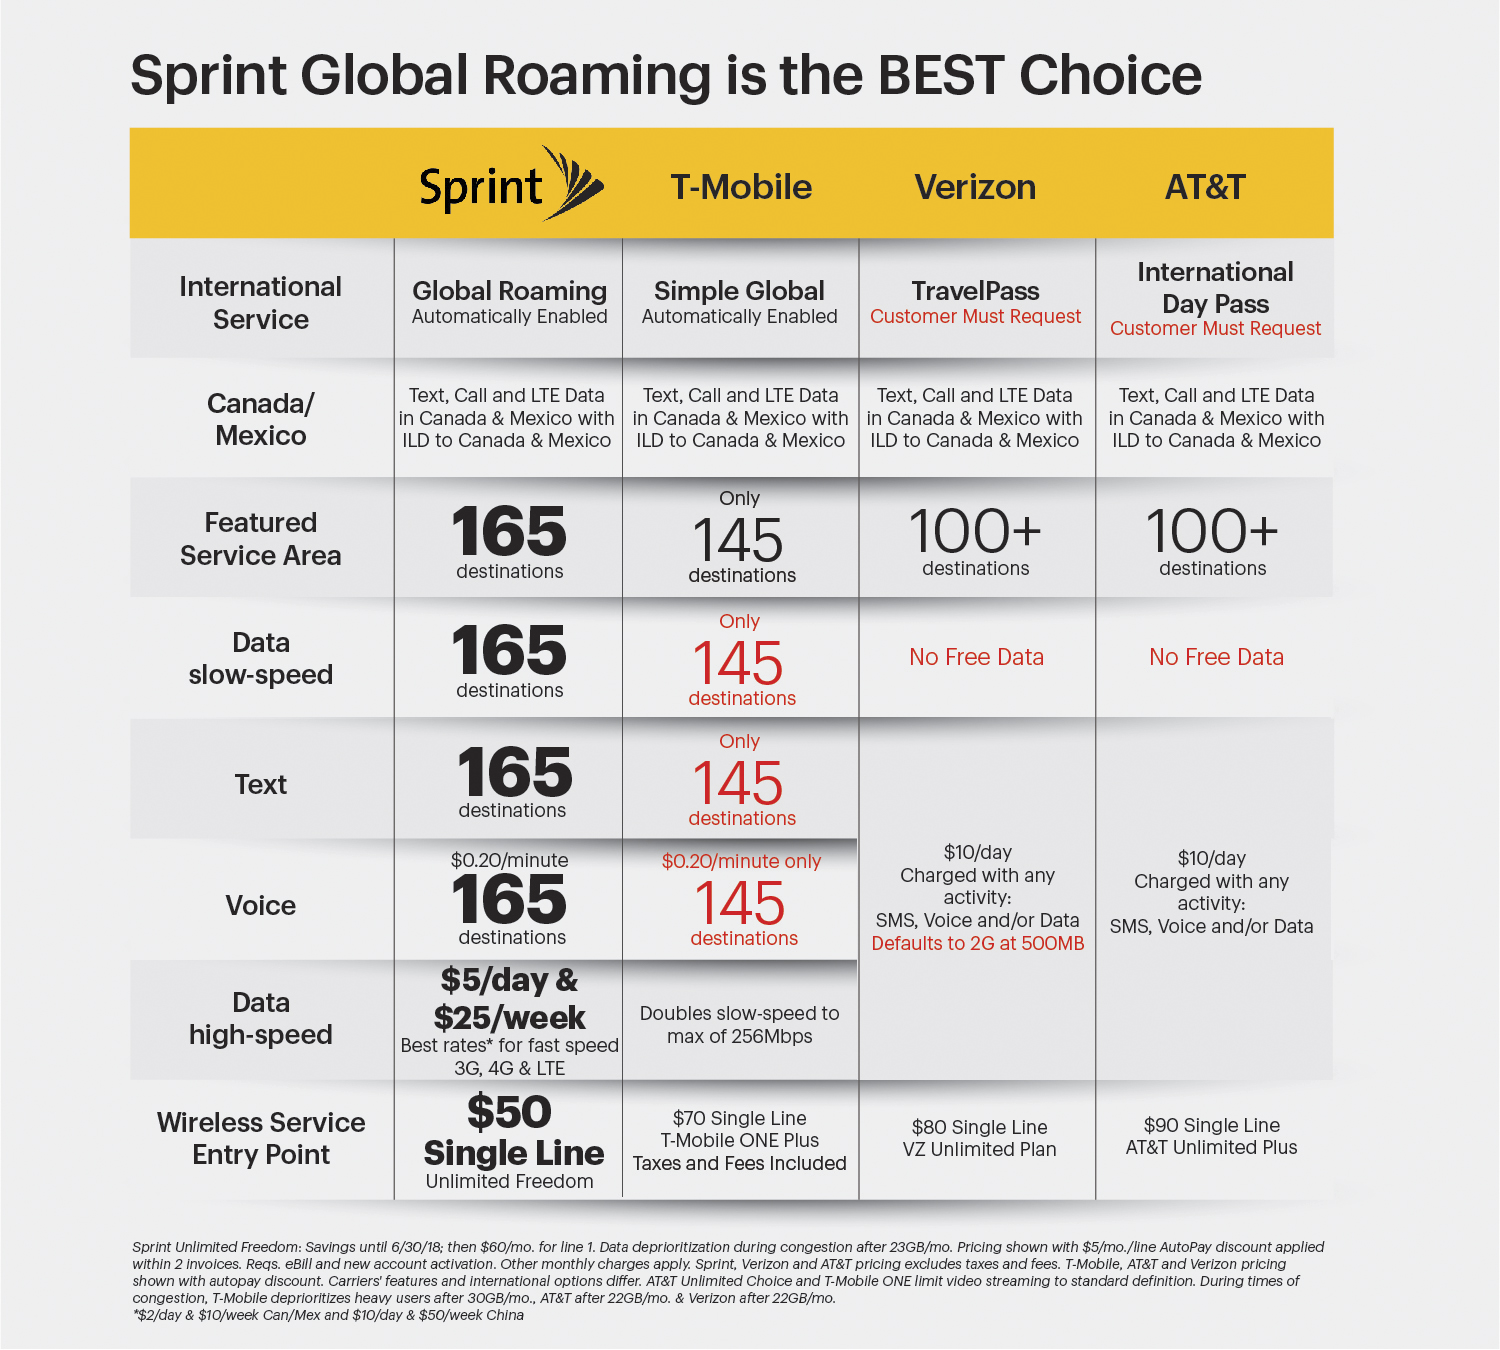 sprint expands international roaming to countries the headline feature here is that big 165 number which sprint is quick to point out is superior to the only 145 countries that t mobile sports